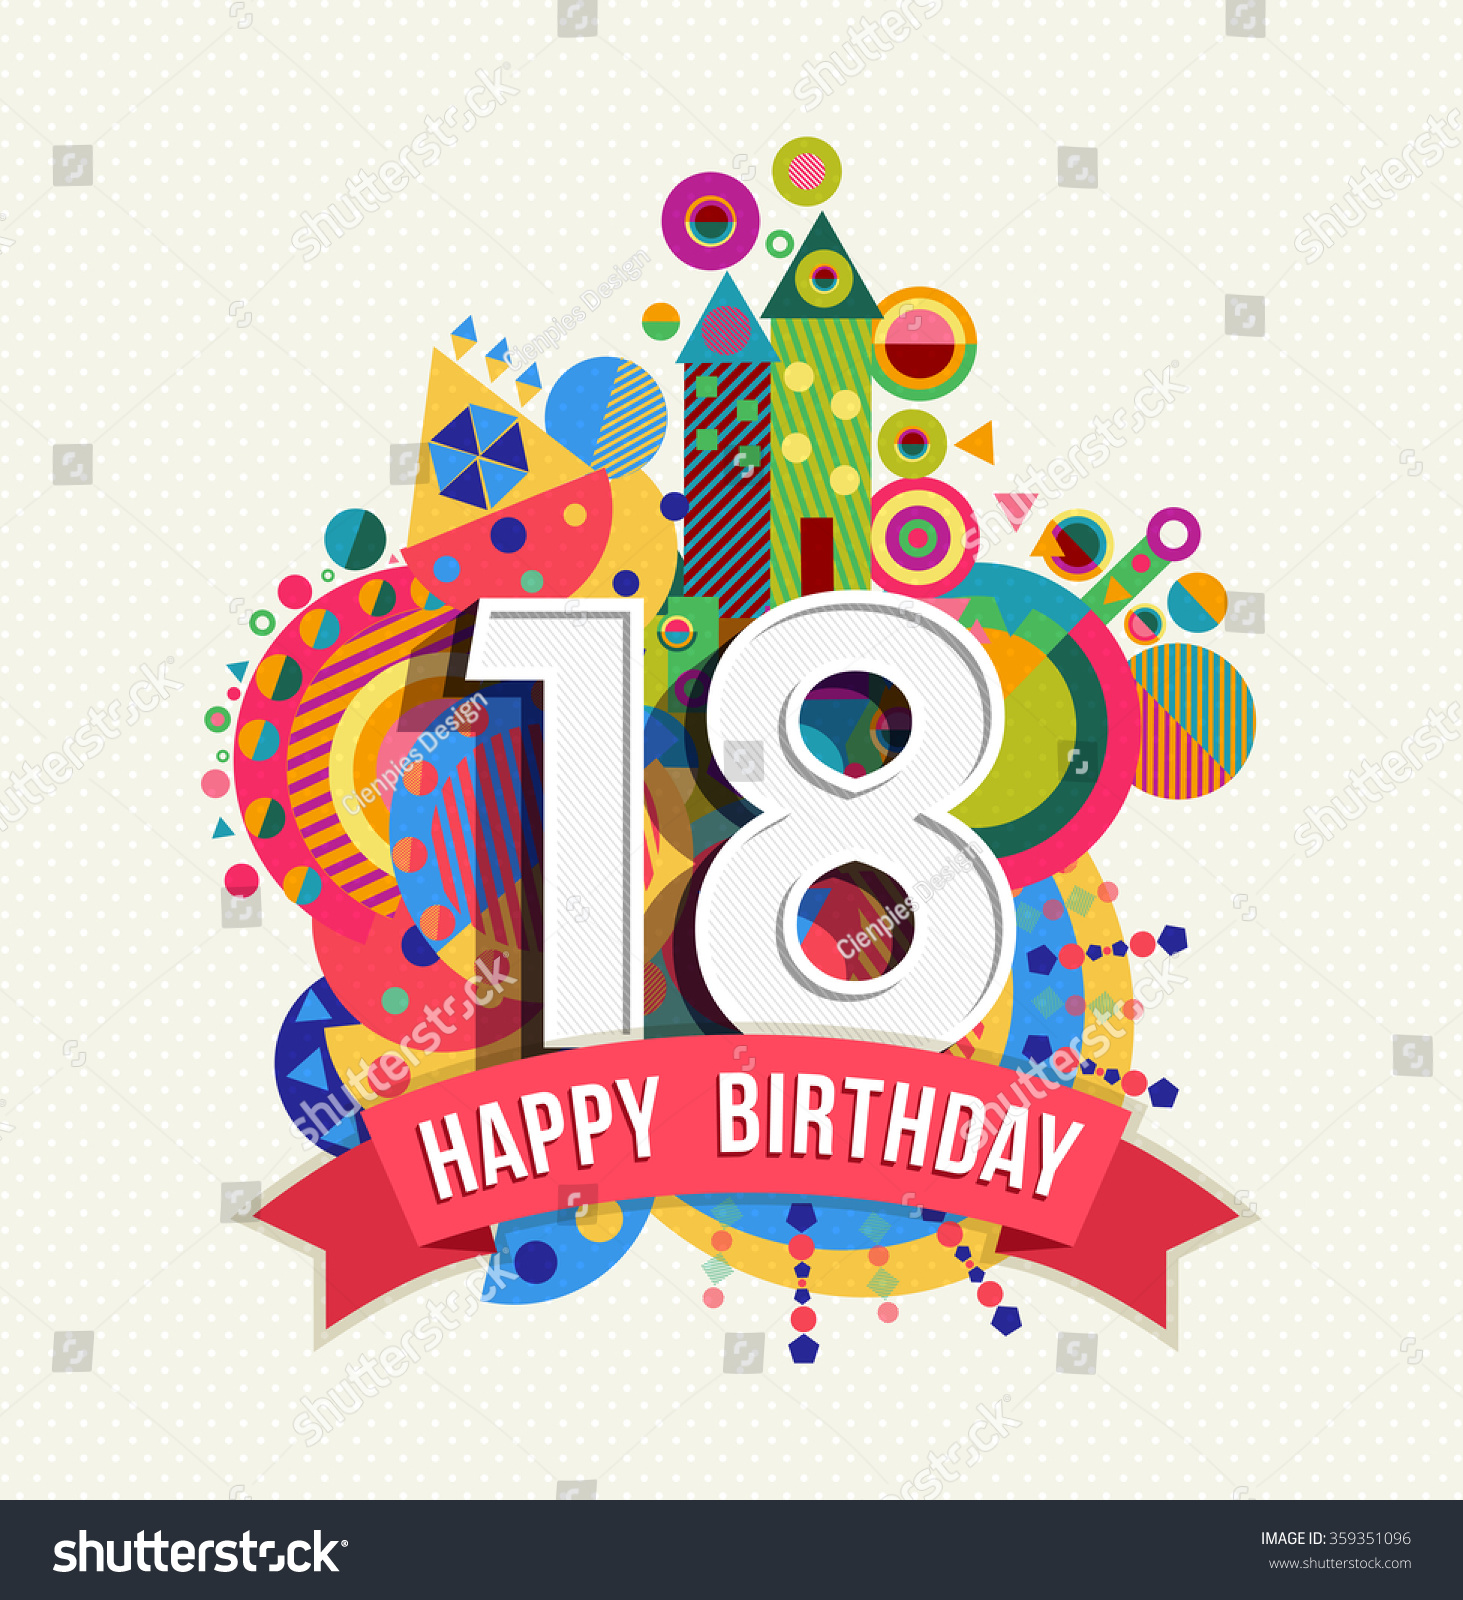 Happy Birthday eighteen 18 year fun celebration greeting card with number text label and colorful geometry design EPS10 vector